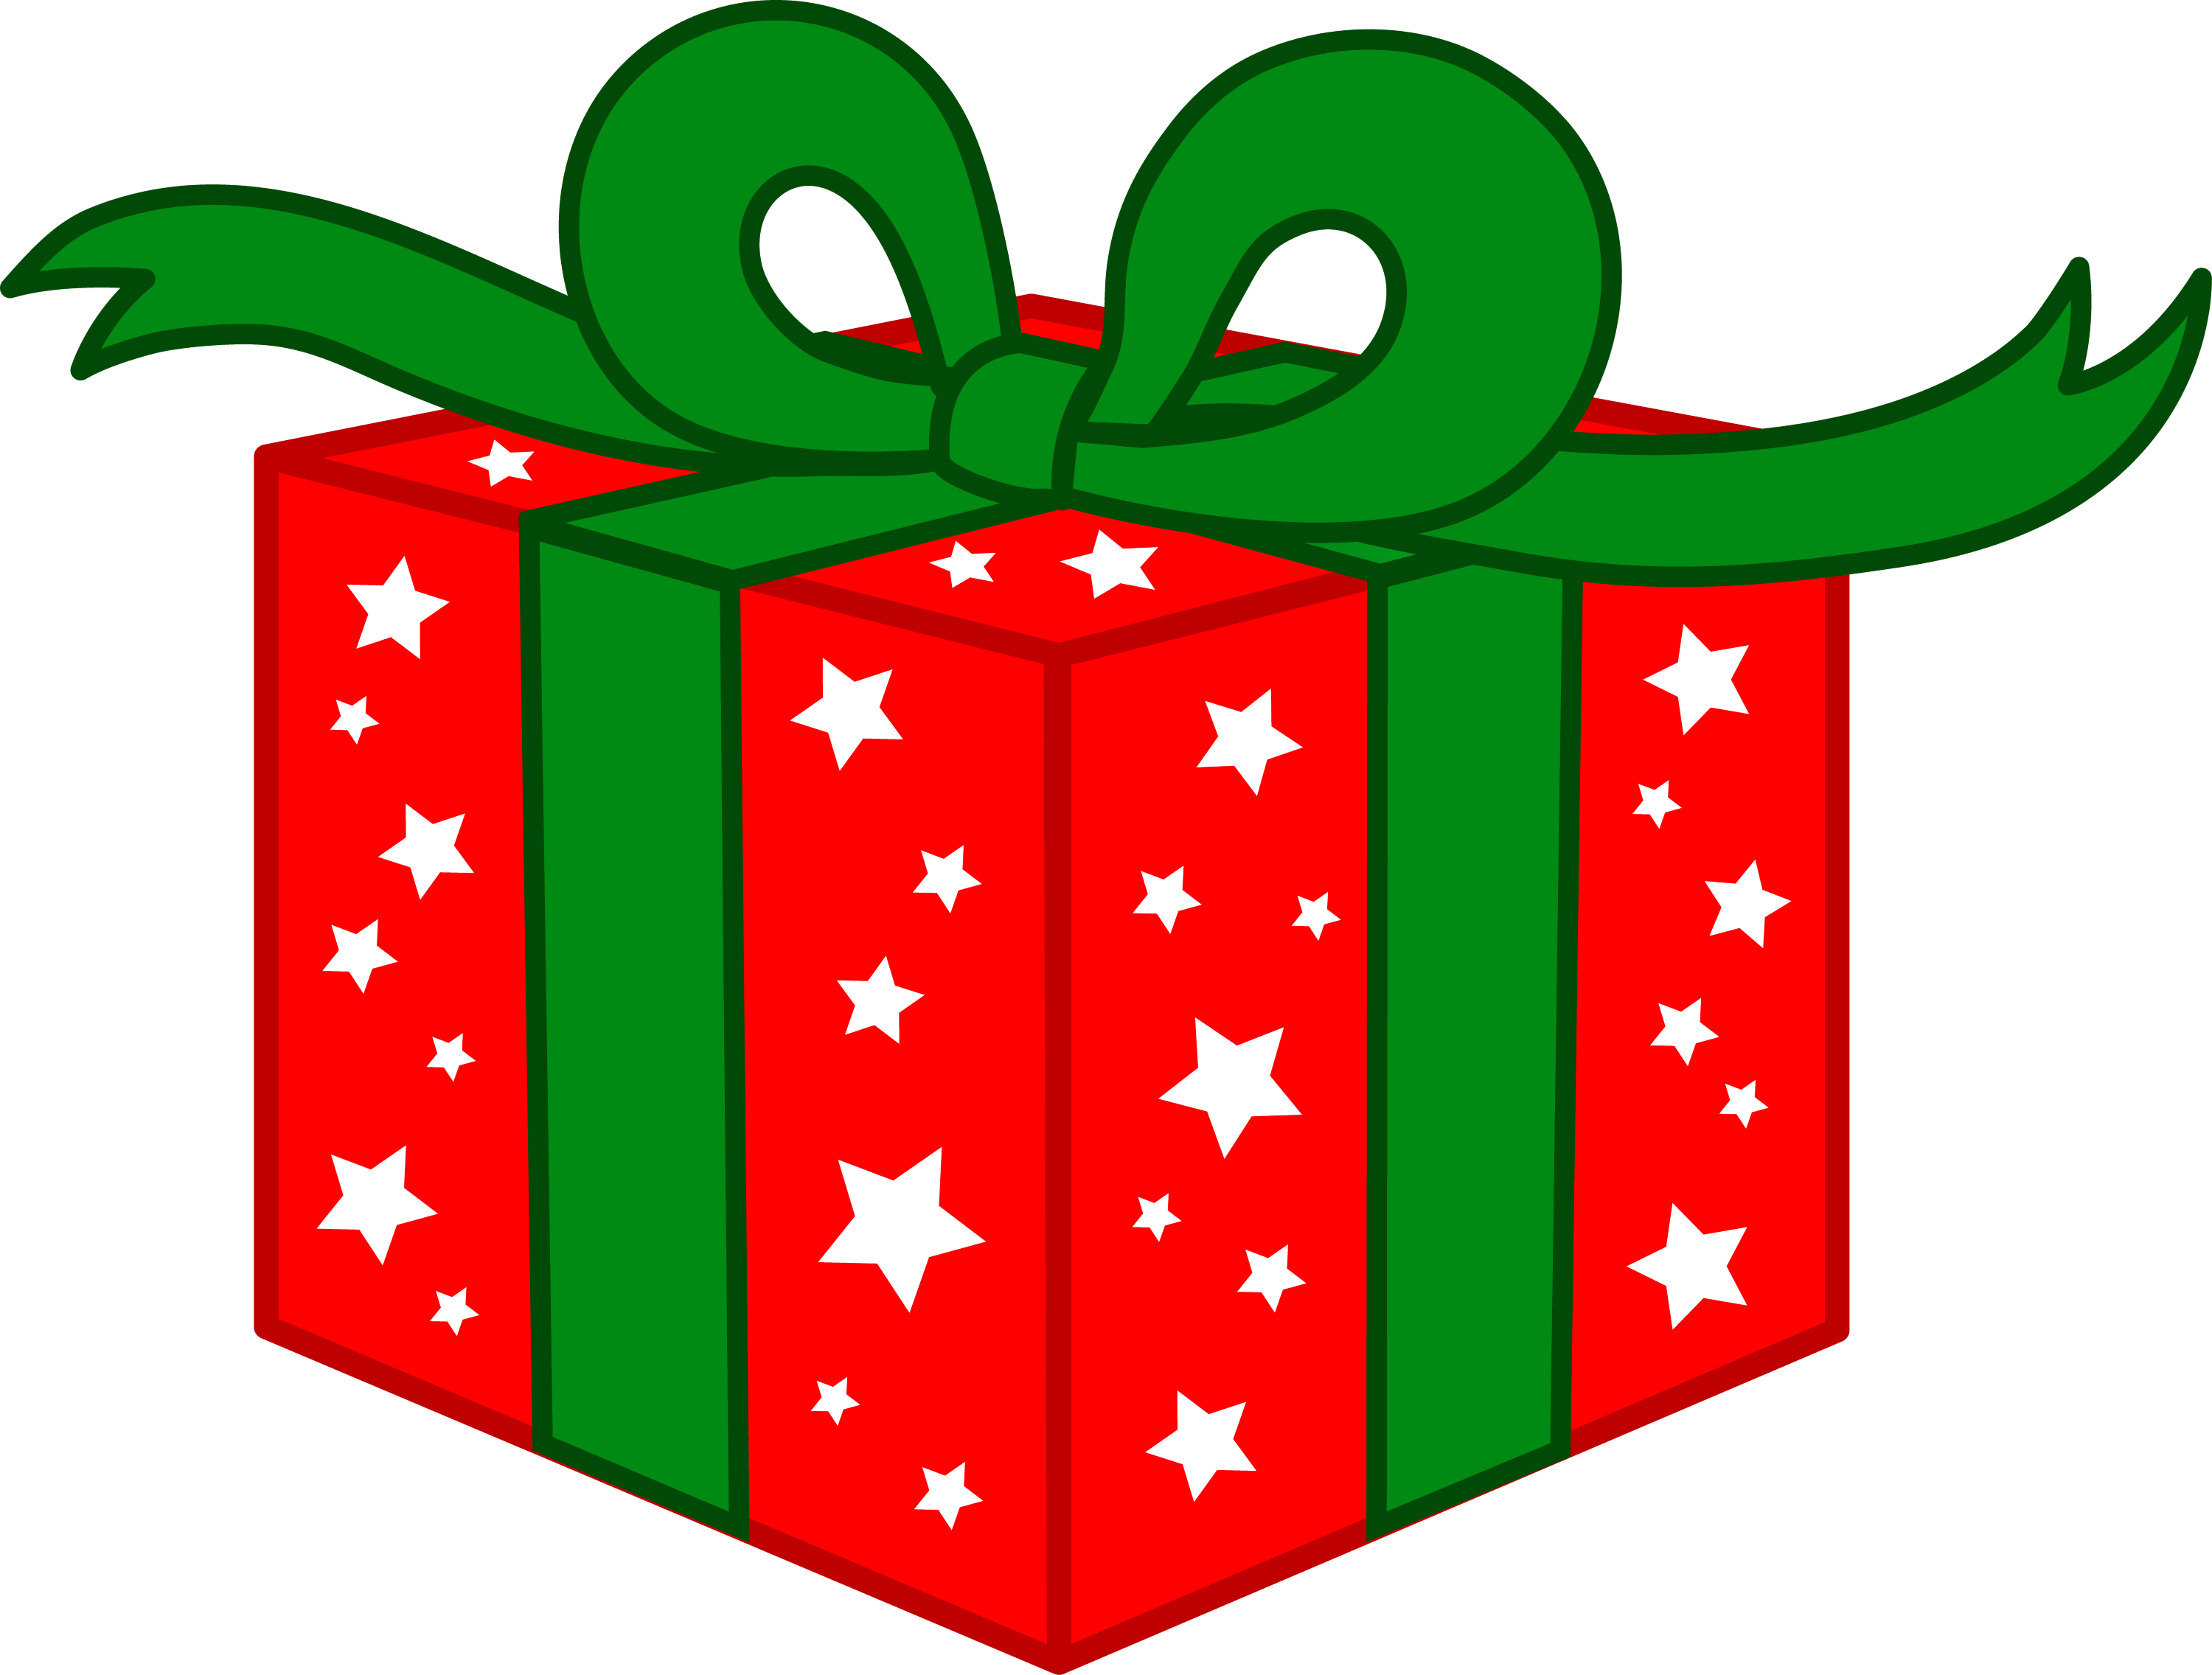 Christmas Gifts For Free. And Green Christmas Gift Free Clip Art.